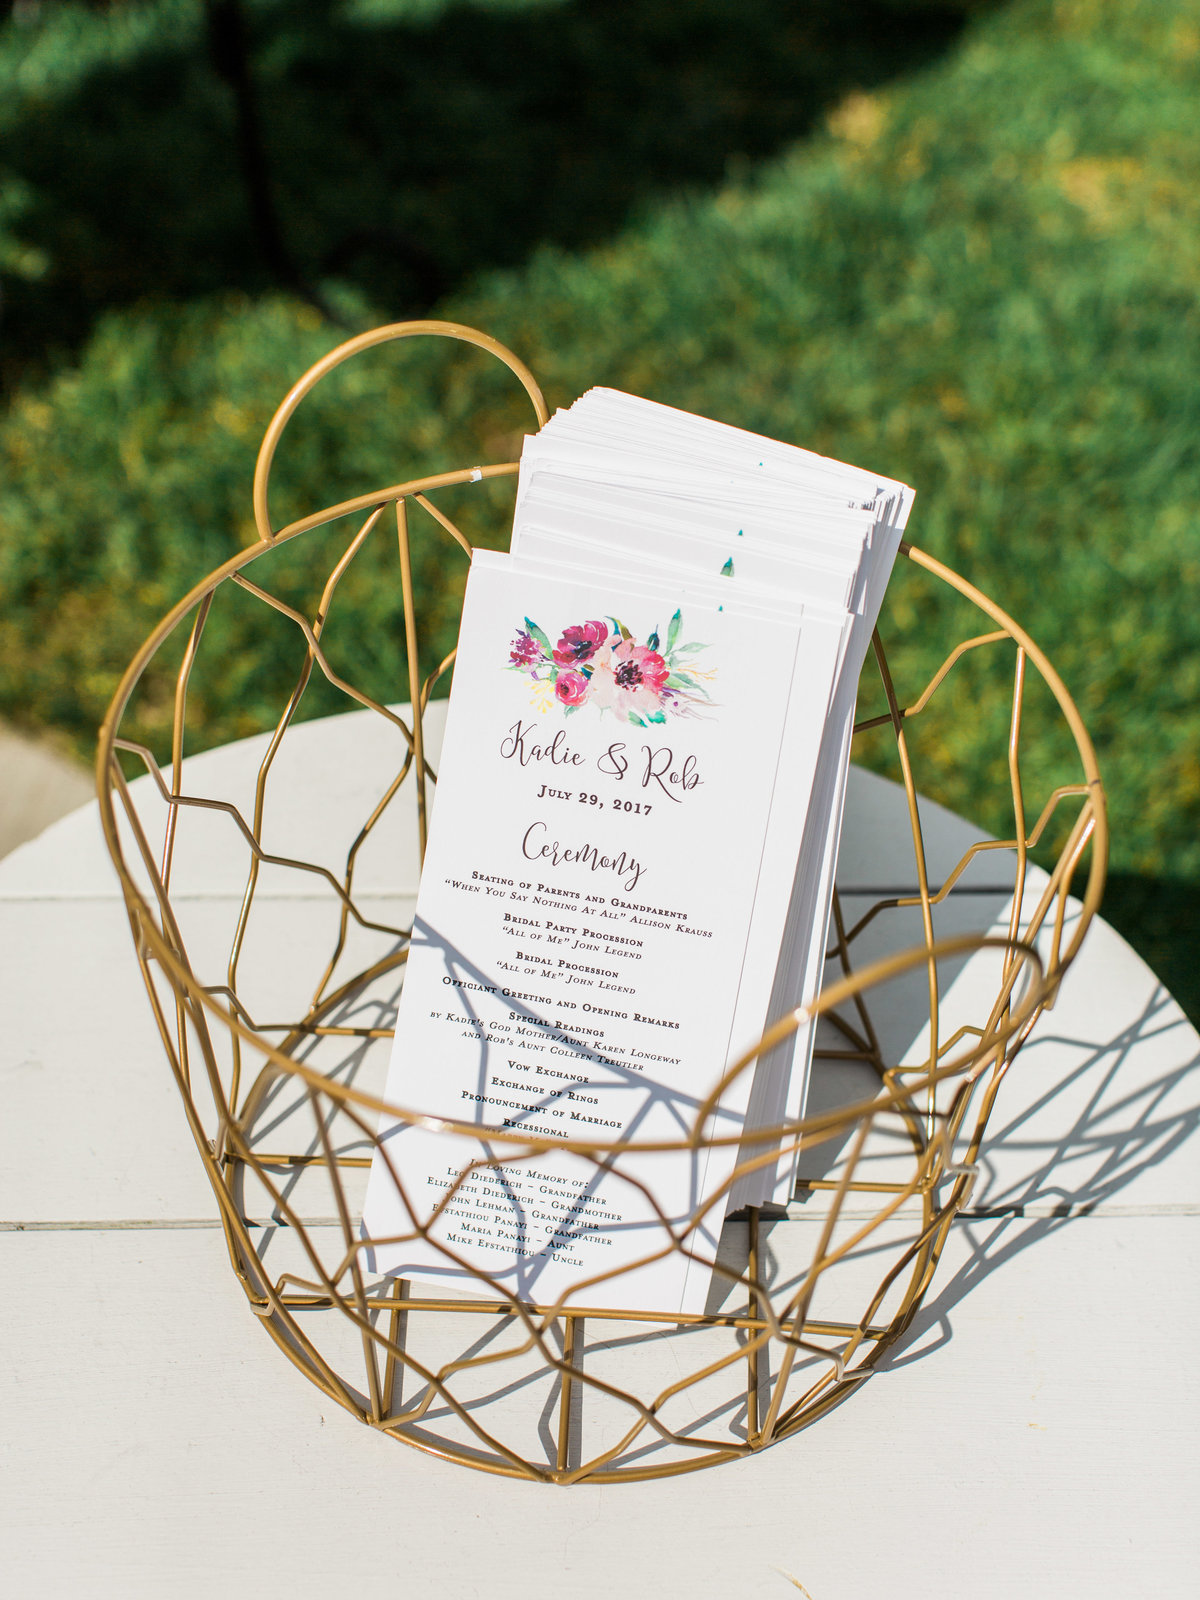 Every Little Detail - Michigan Wedding Planning and Event Design41